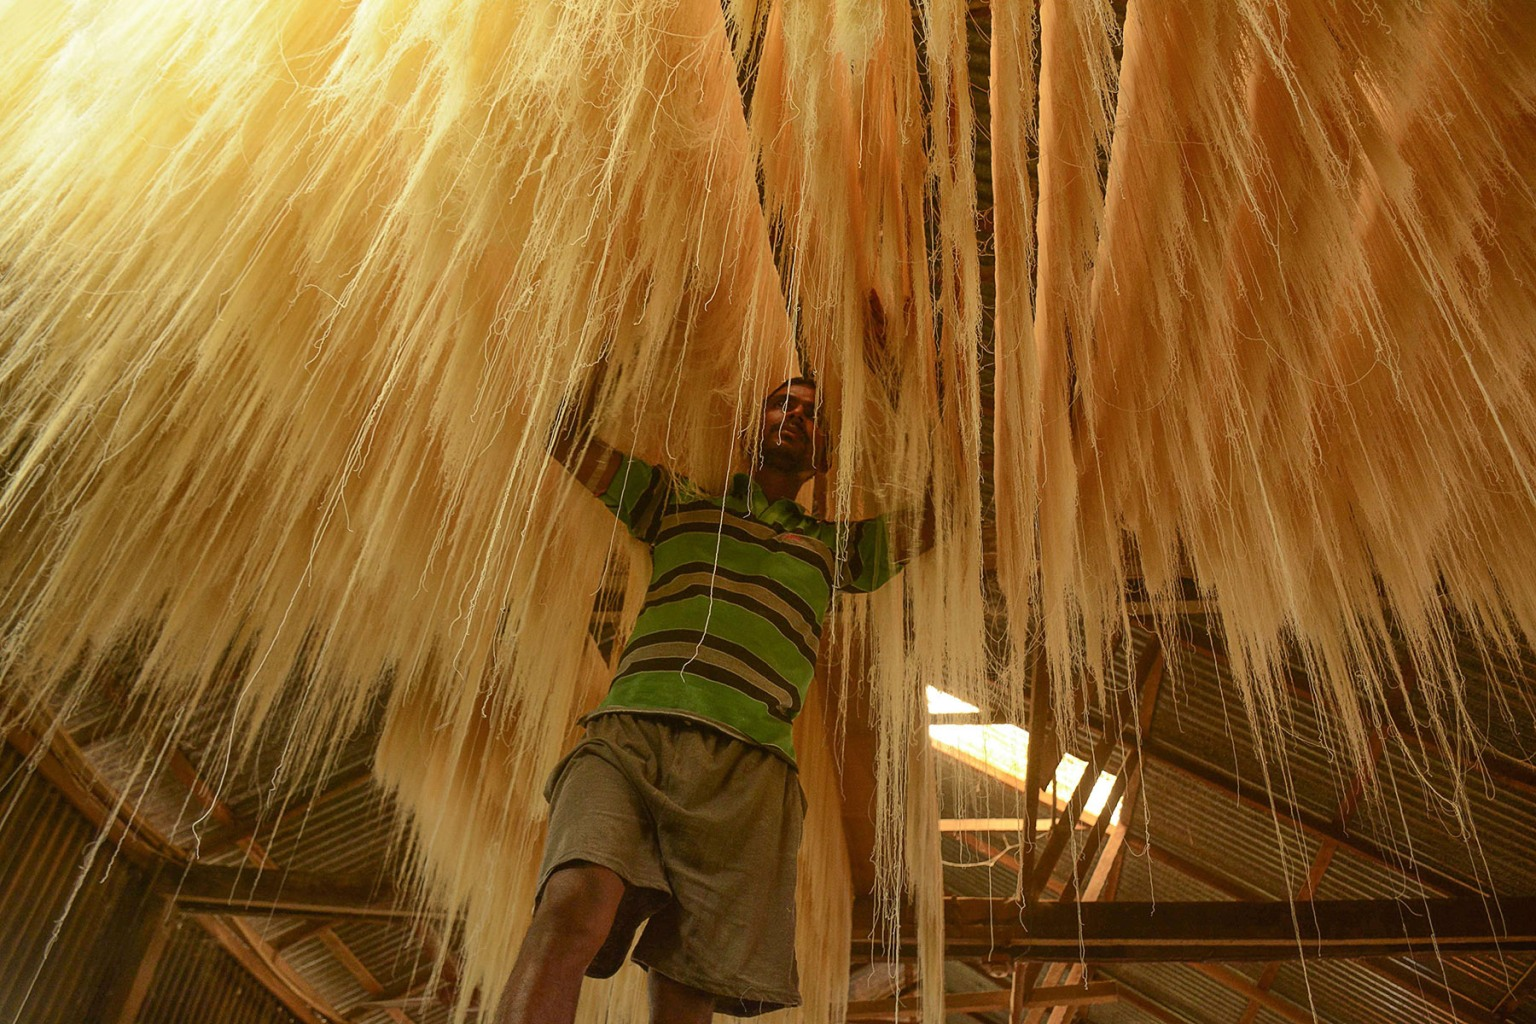 An Indian worker arranges strands of vermicelli noodles to dry inside a factory on the outskirts of Agartala during the Muslim holy fasting month of Ramadan on May 24. The noodles are used in sheer khurma, a sweet Indian pudding sometimes served to break fast during Ramadan. ARINDAM DEY/AFP/Getty Images